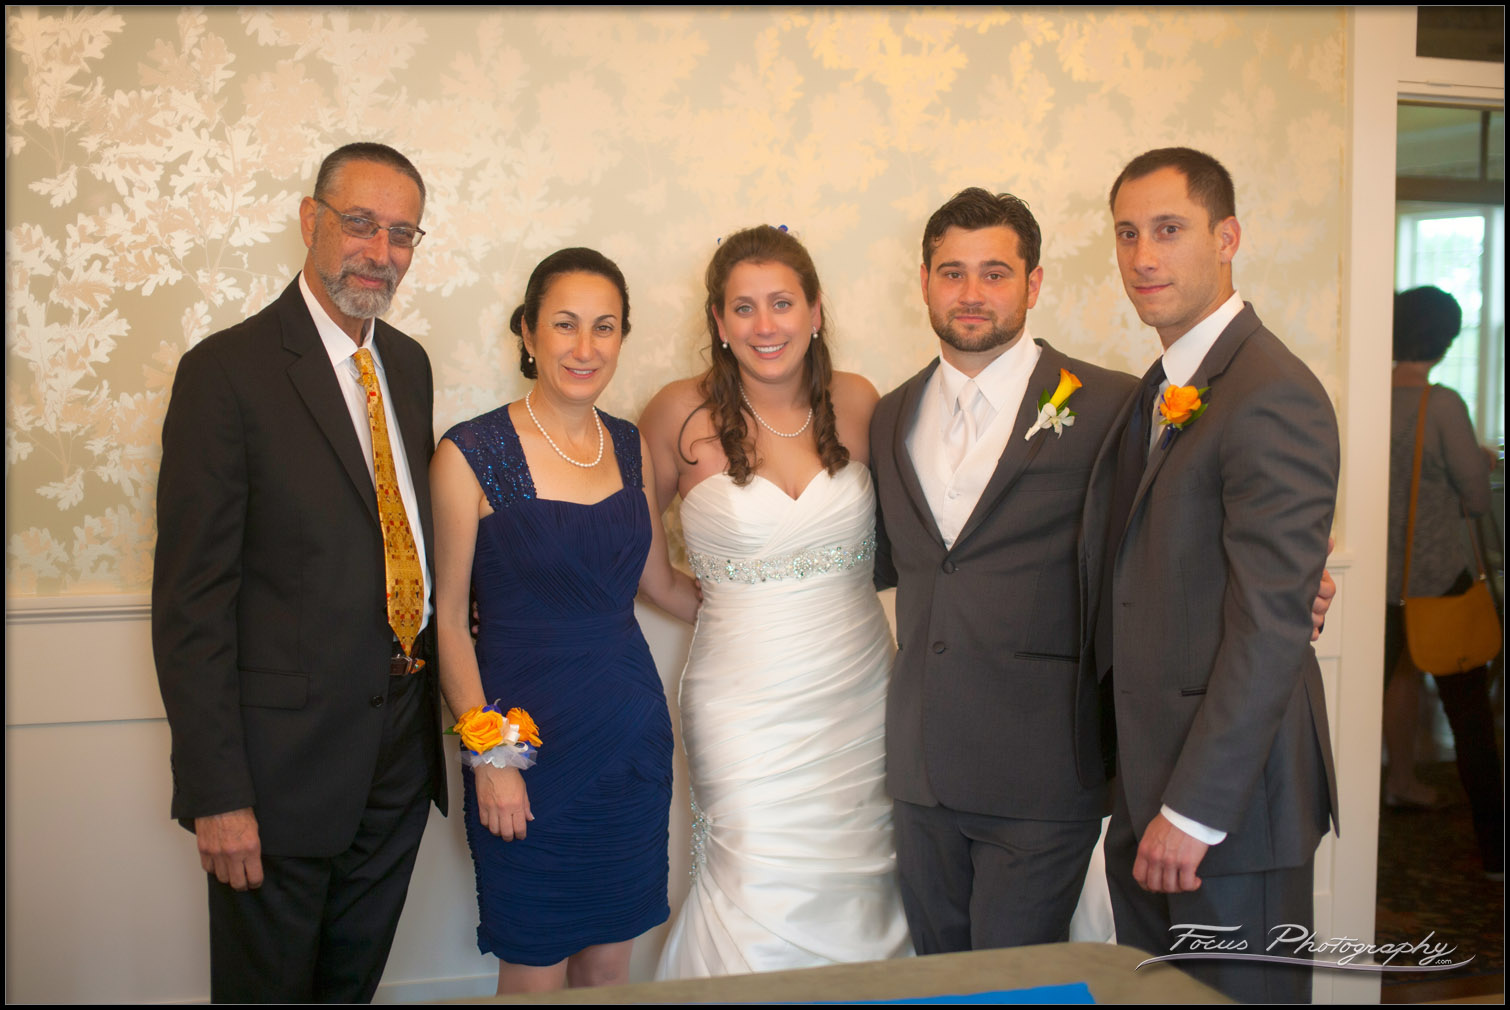 Colony hotel wedding photographs